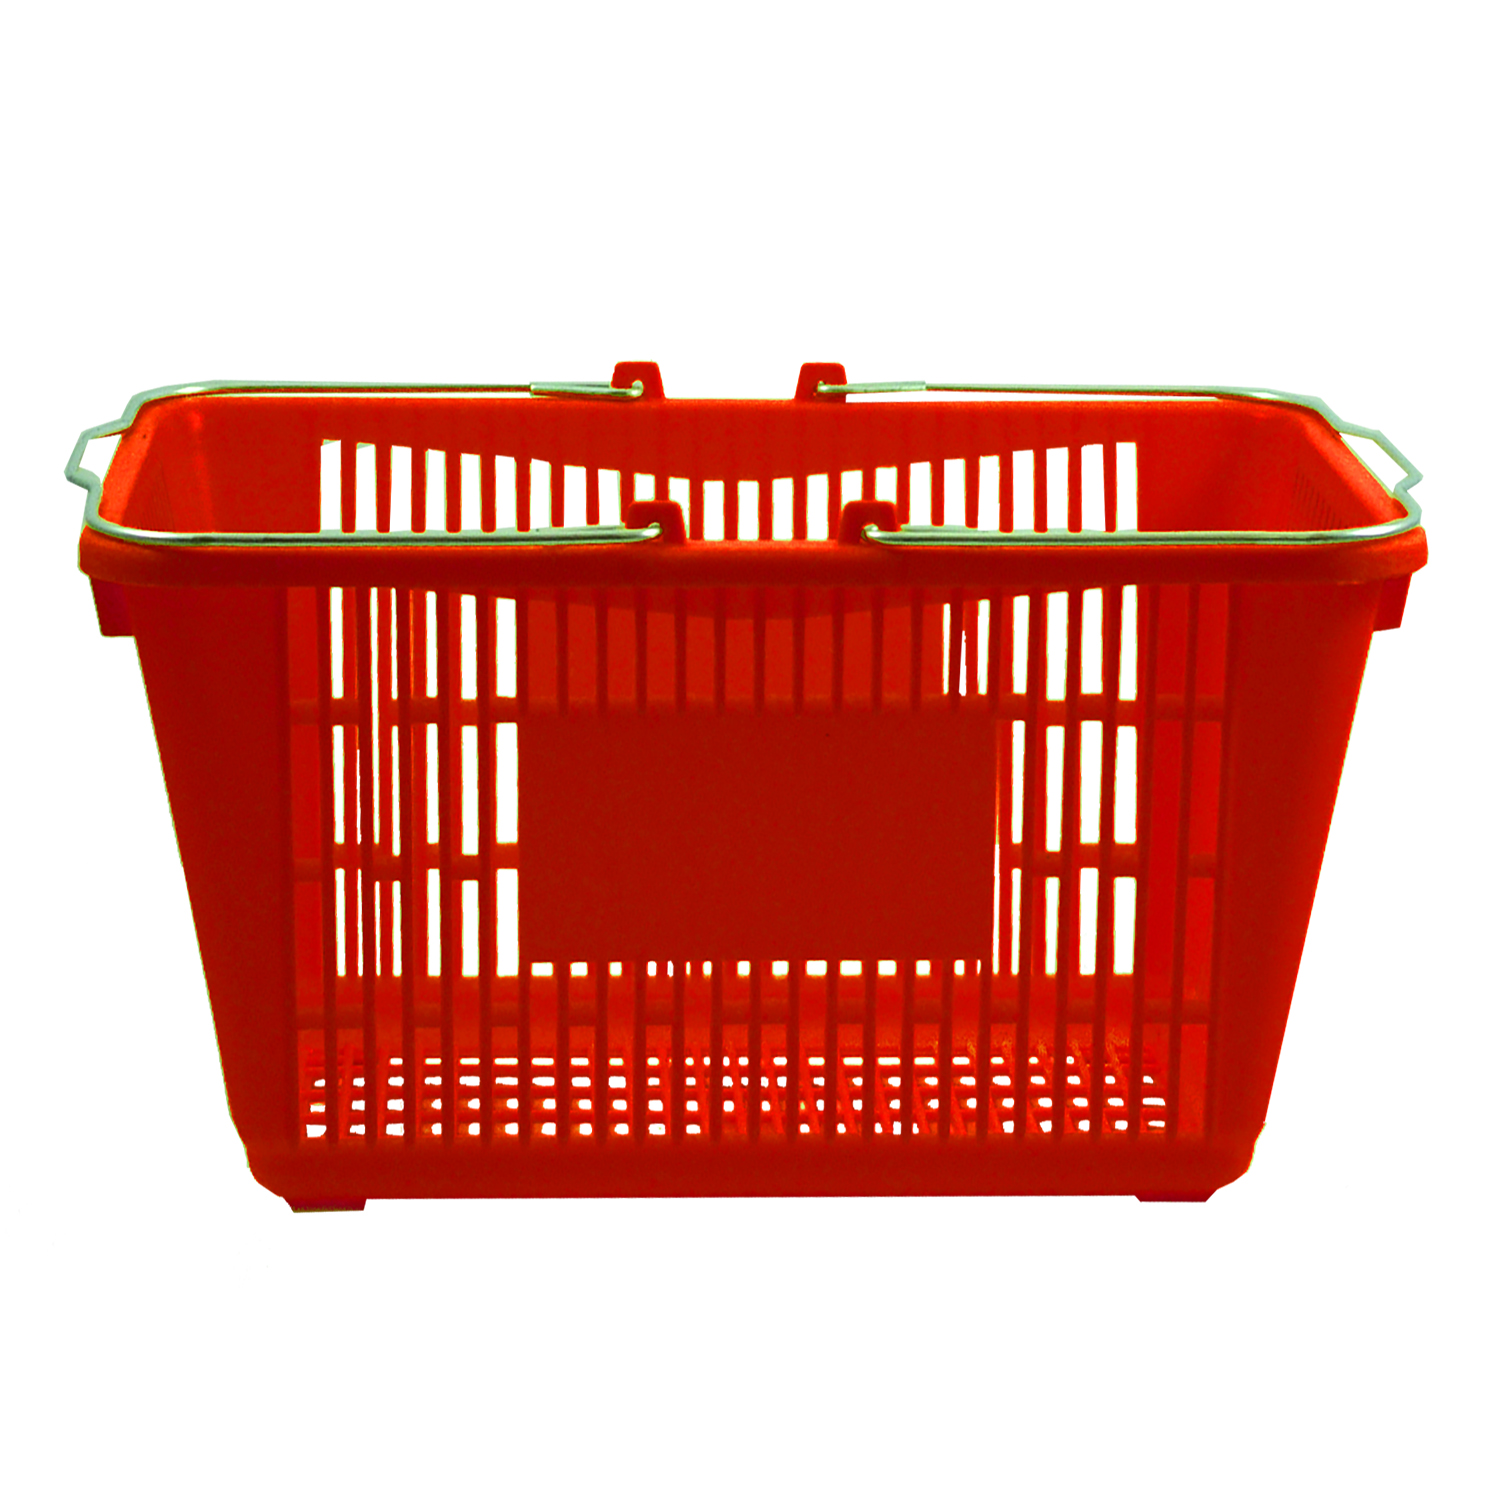 Regular Baskets, Red (set of 16)